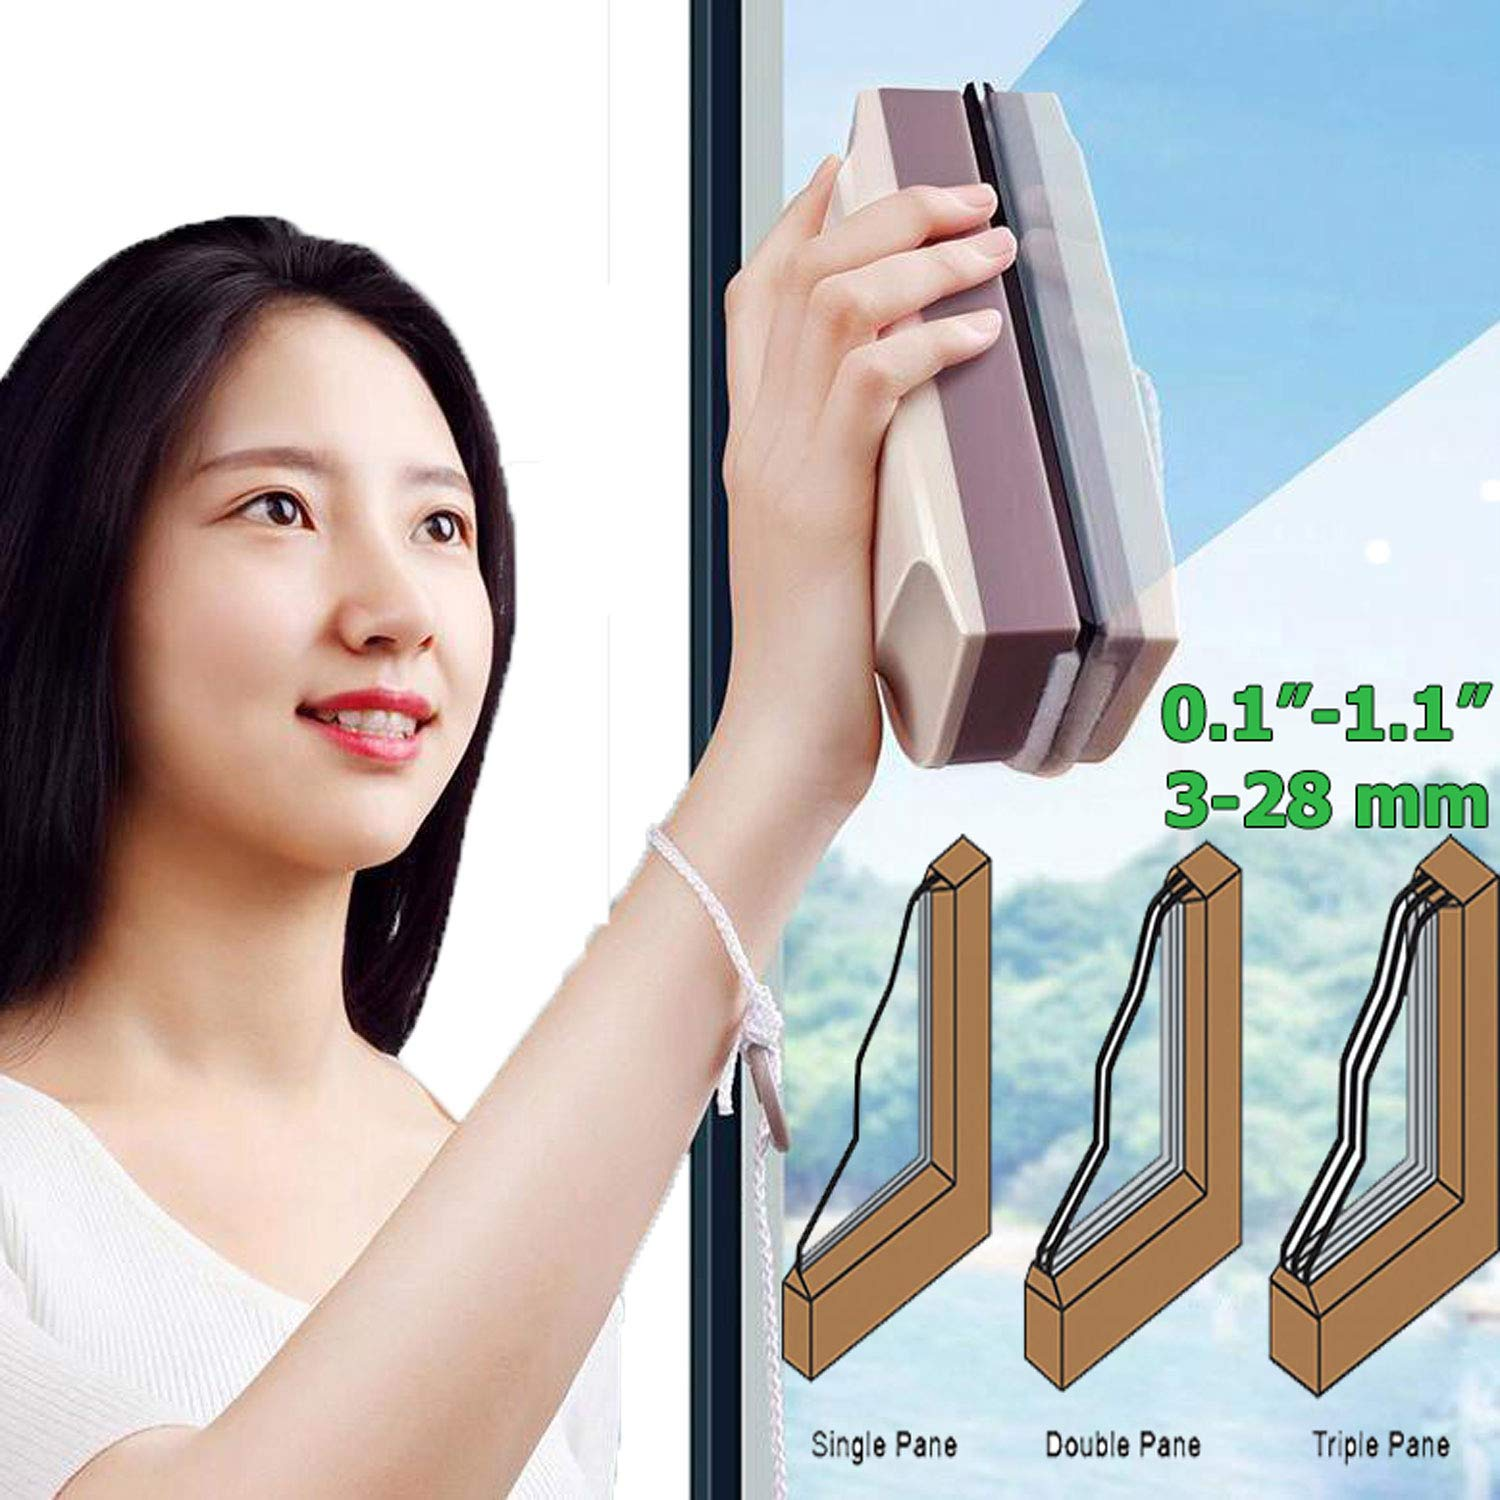 A&J Clean Super Magnetic Window Cleaner Up to Triple Glazed Windows 3-28mm Thickness Glass Window Cleaning Internal and External simultaneously by A&J Clean